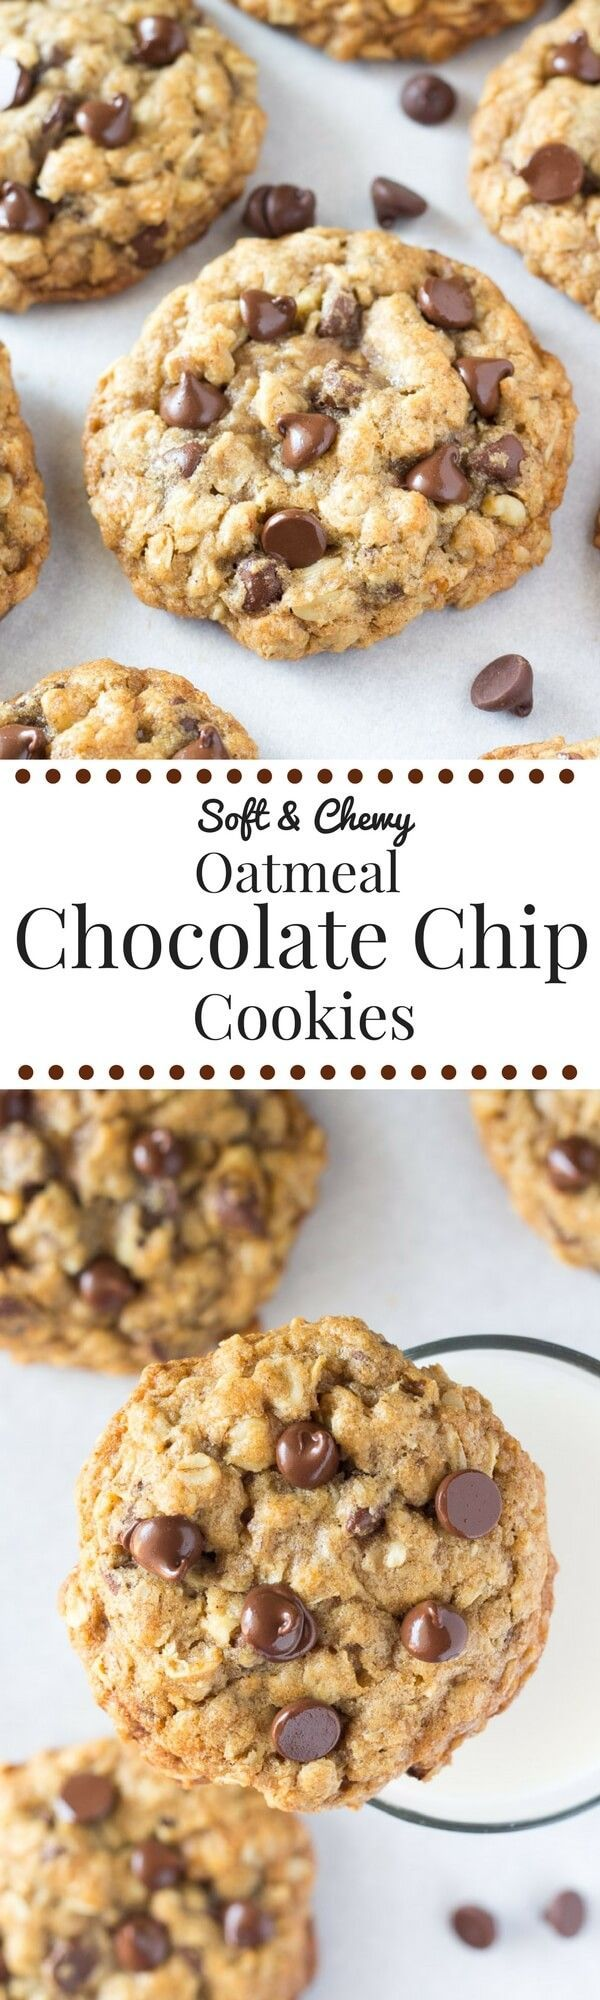 Best 20+ Chocolate oatmeal cookies ideas on Pinterest | Oatmeal ...